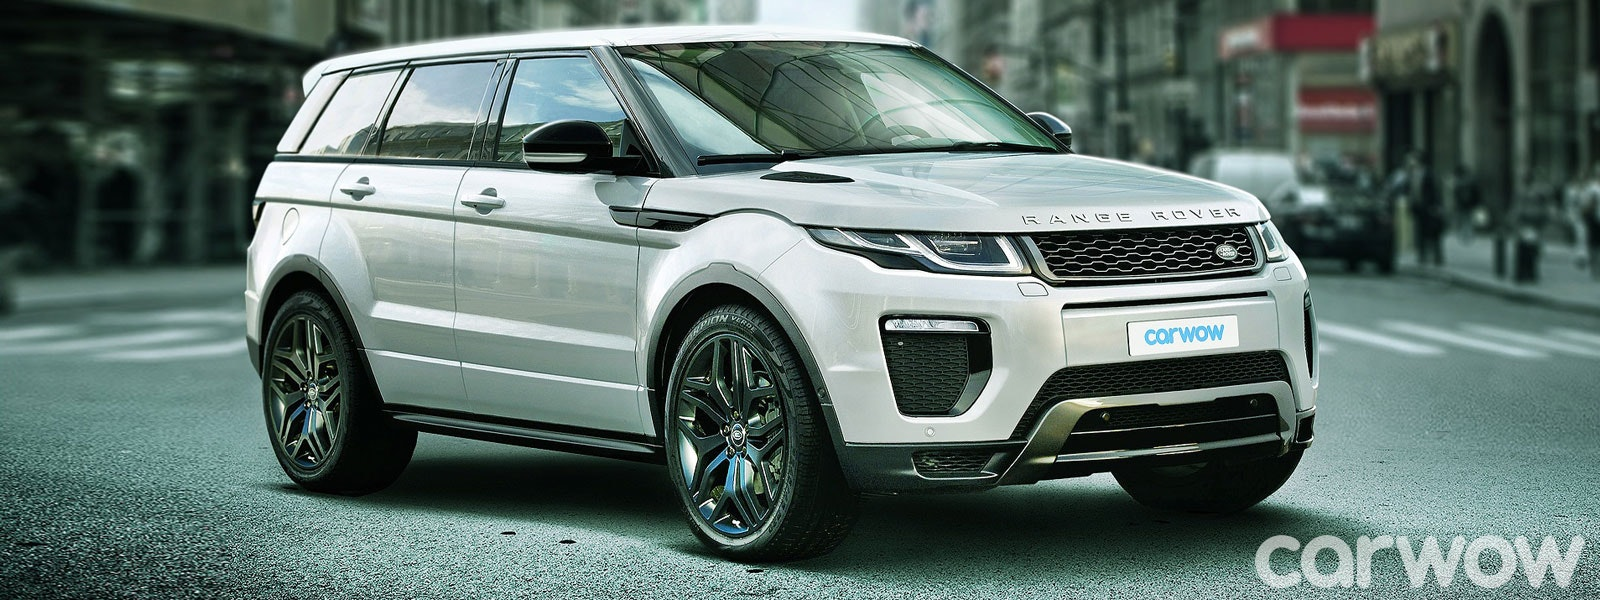 Superior Our Exclusive Render Shows How The New 7 Seater Evoque Could Looku2026